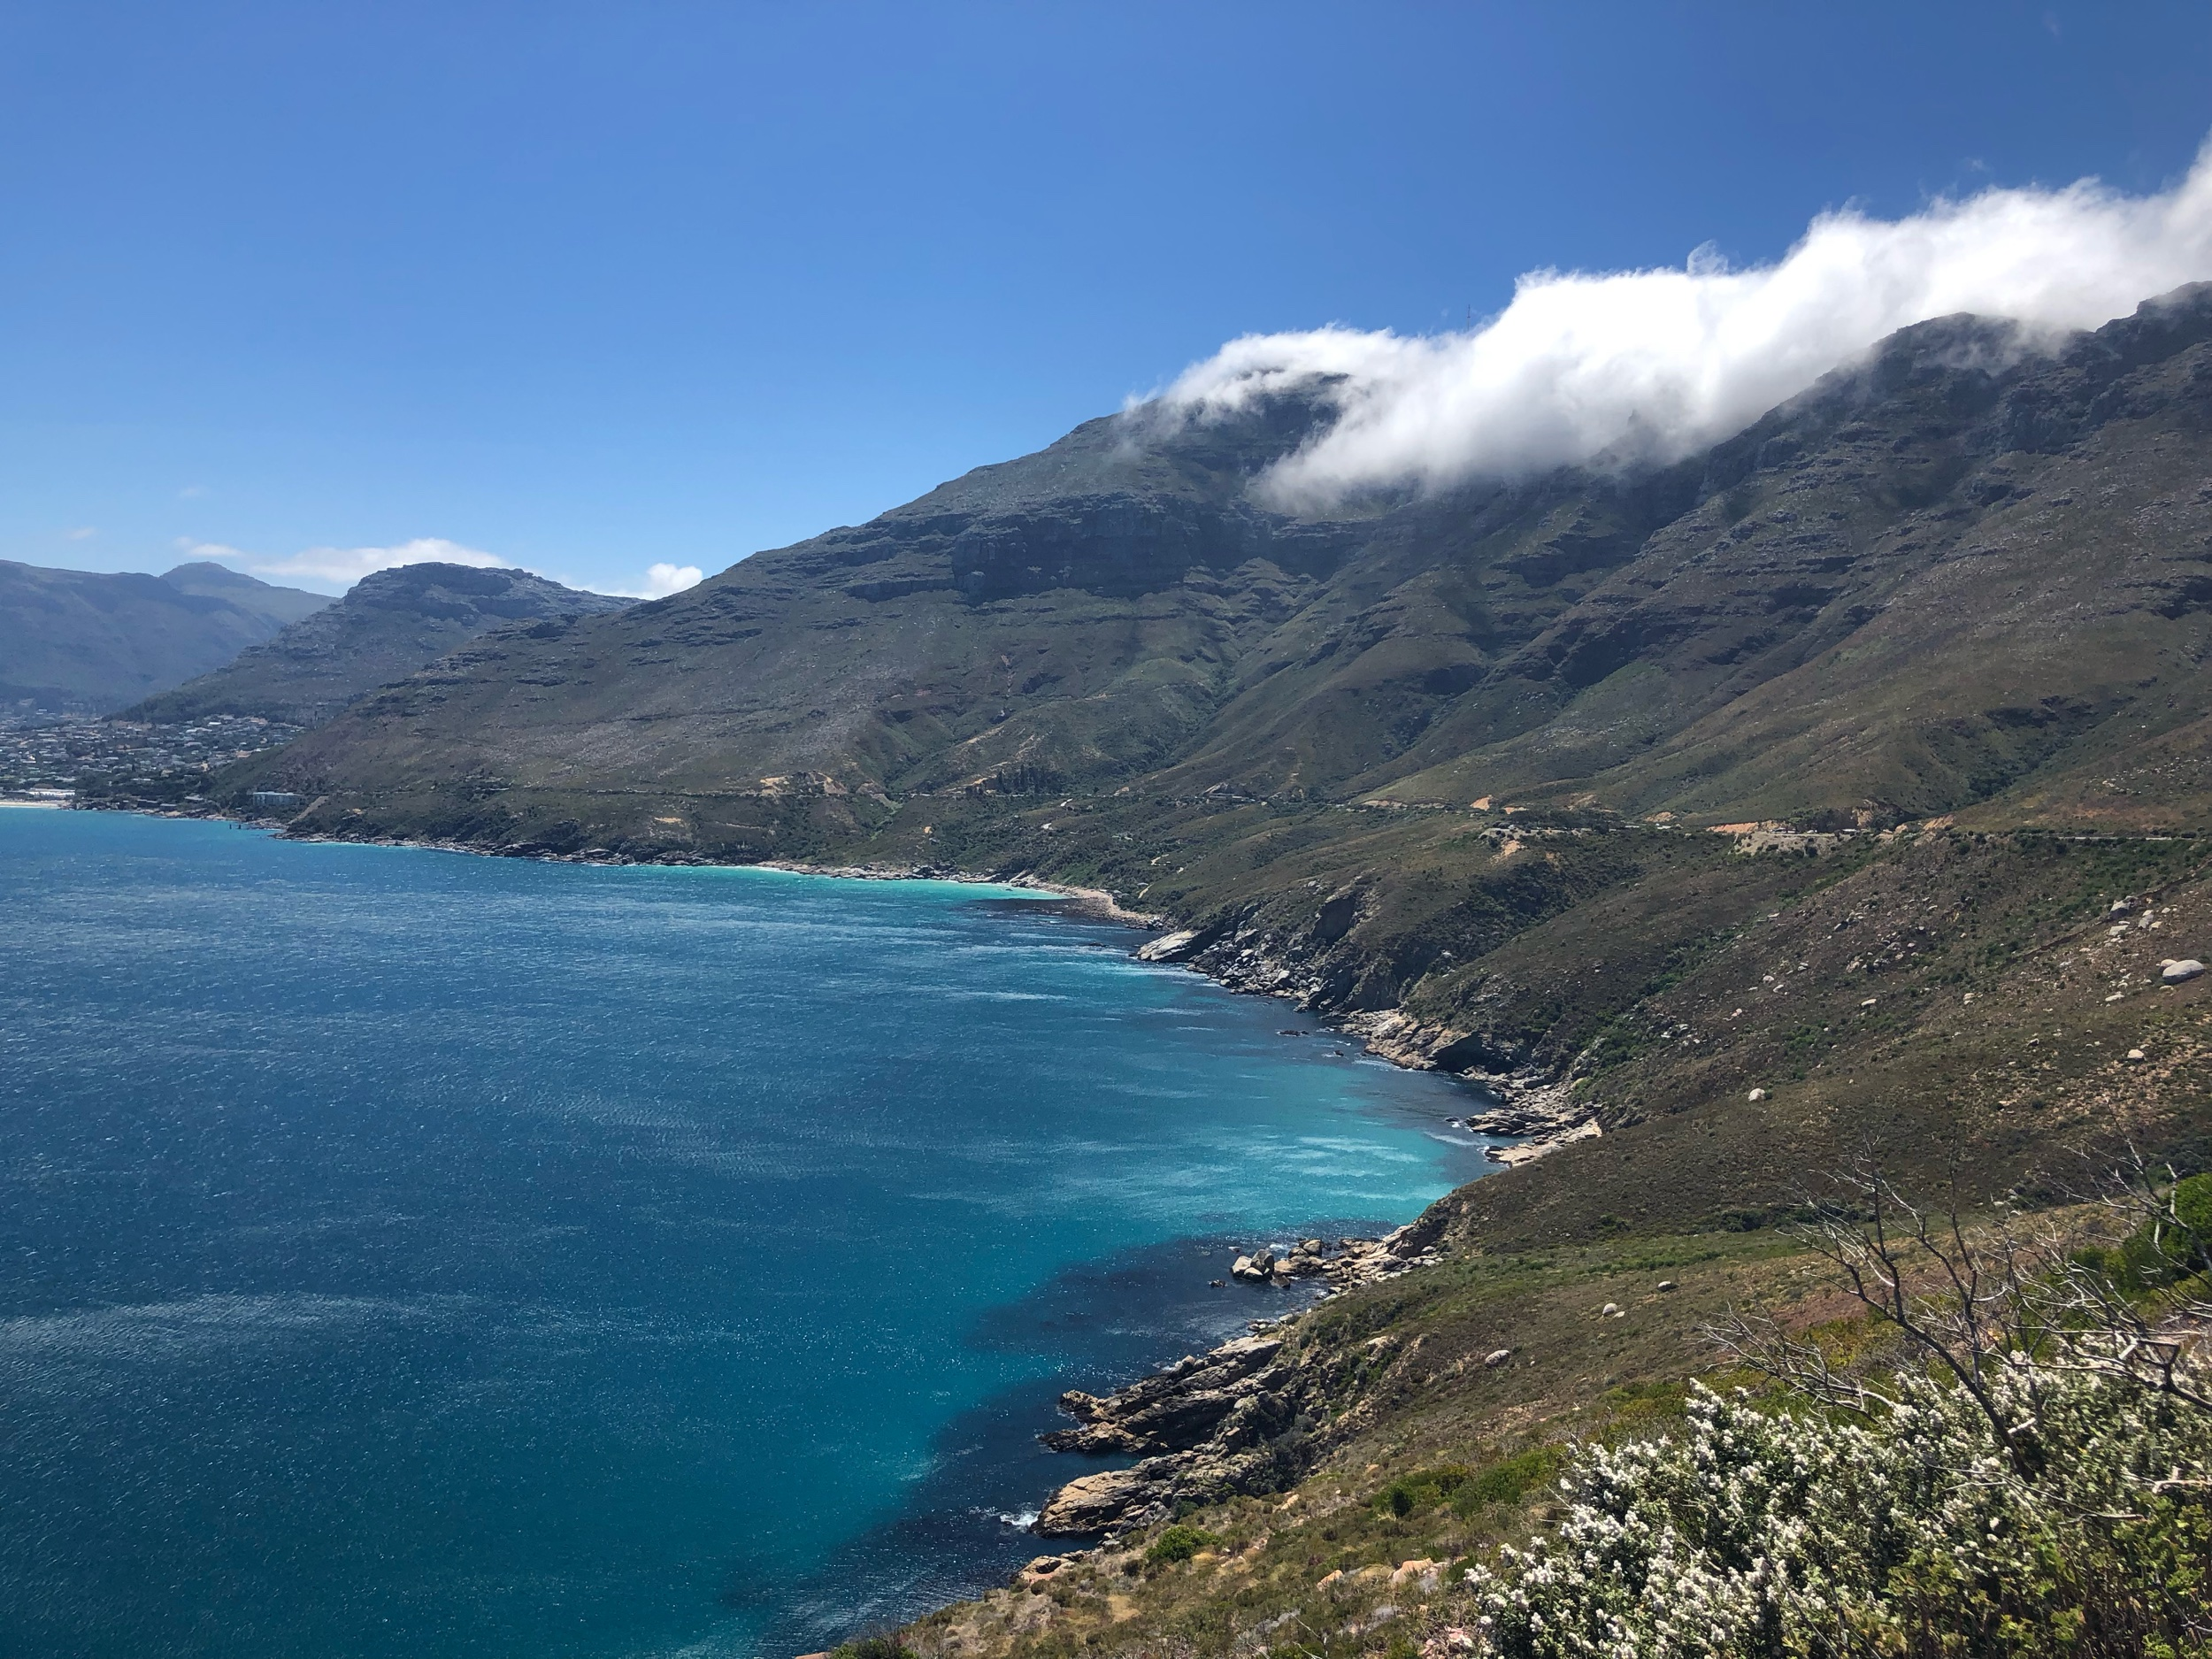 Chapman's Peak Drive View of the South African coastline